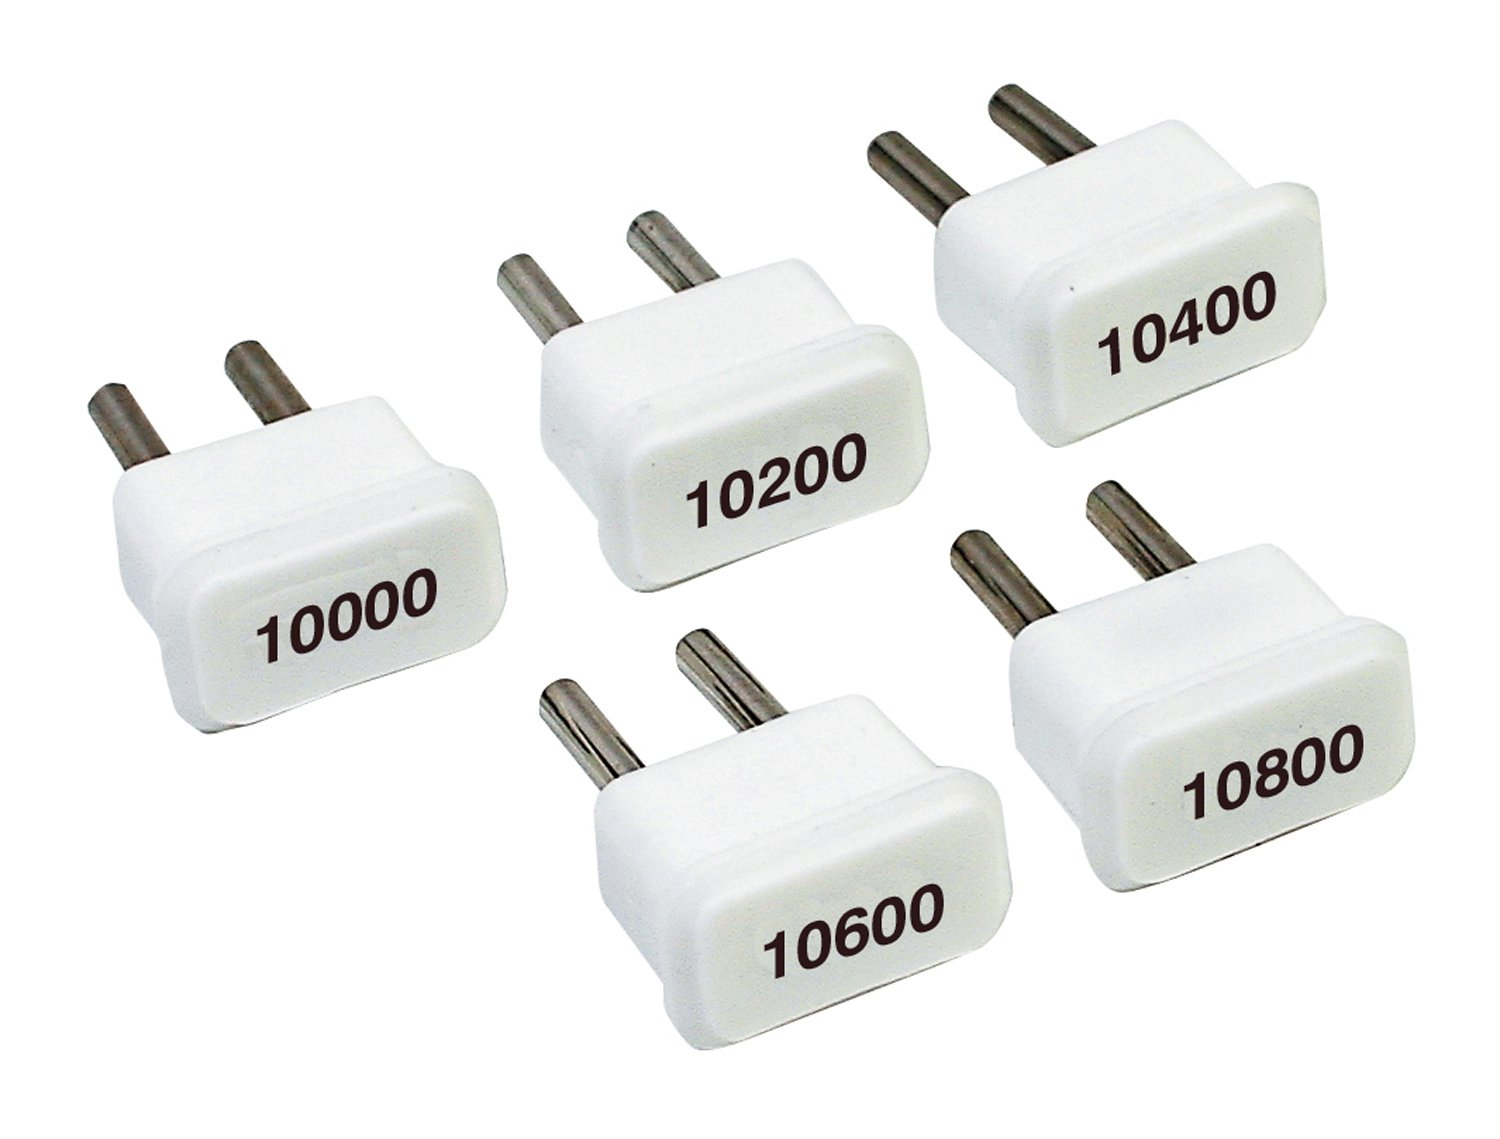 8750 - 10000 Series Module Kits, Even Increments Image